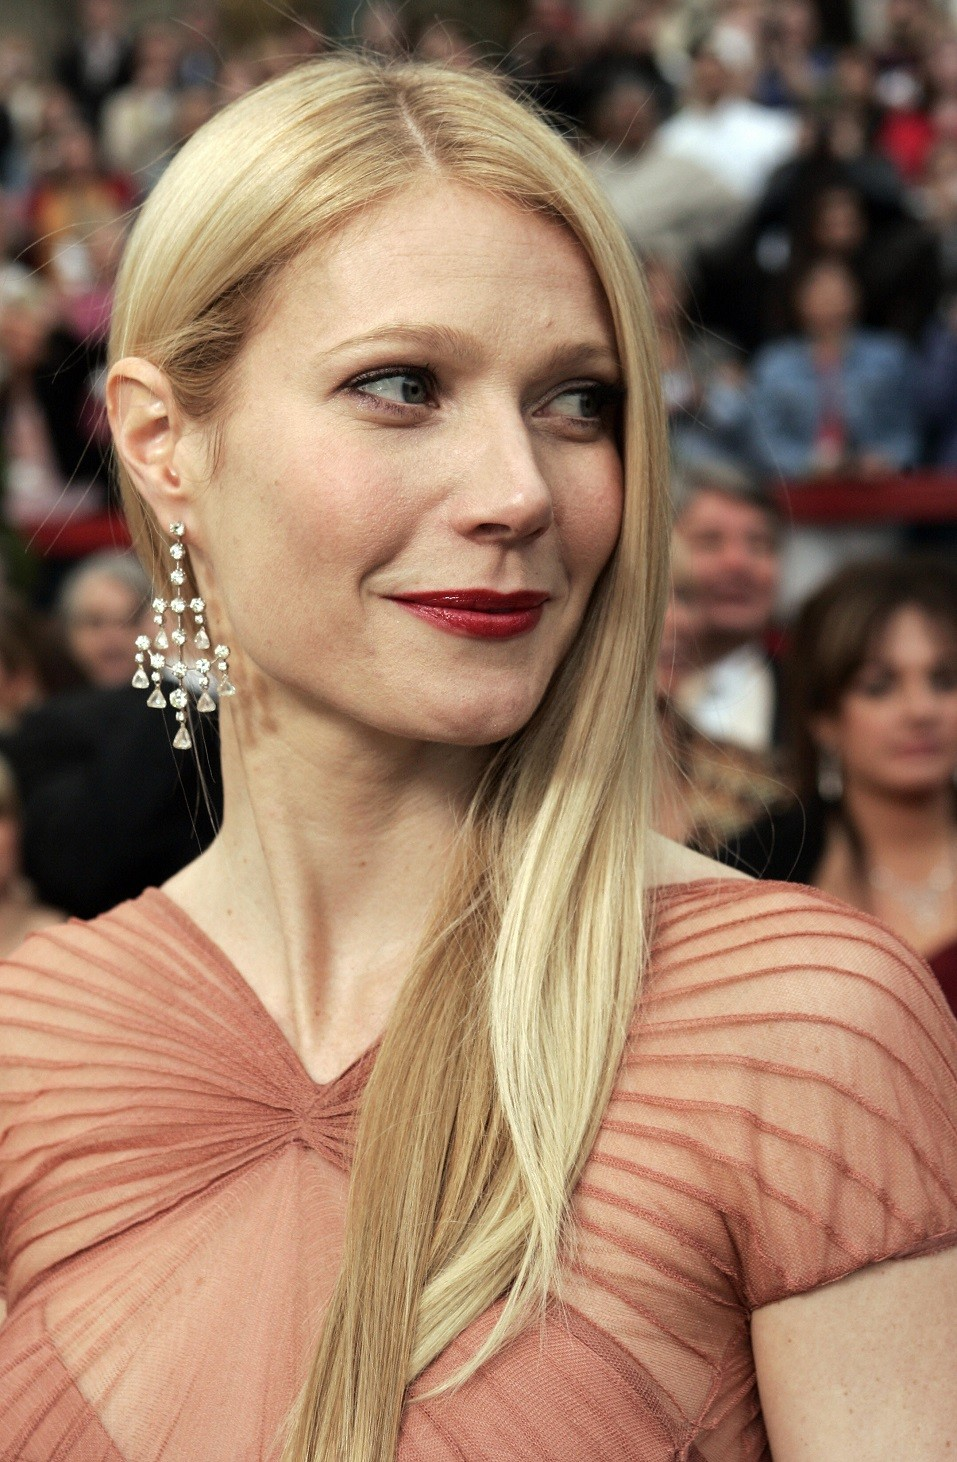 Academy Award winner Gwyneth Paltrow arrives at the 79th Academy Awards in Hollywood